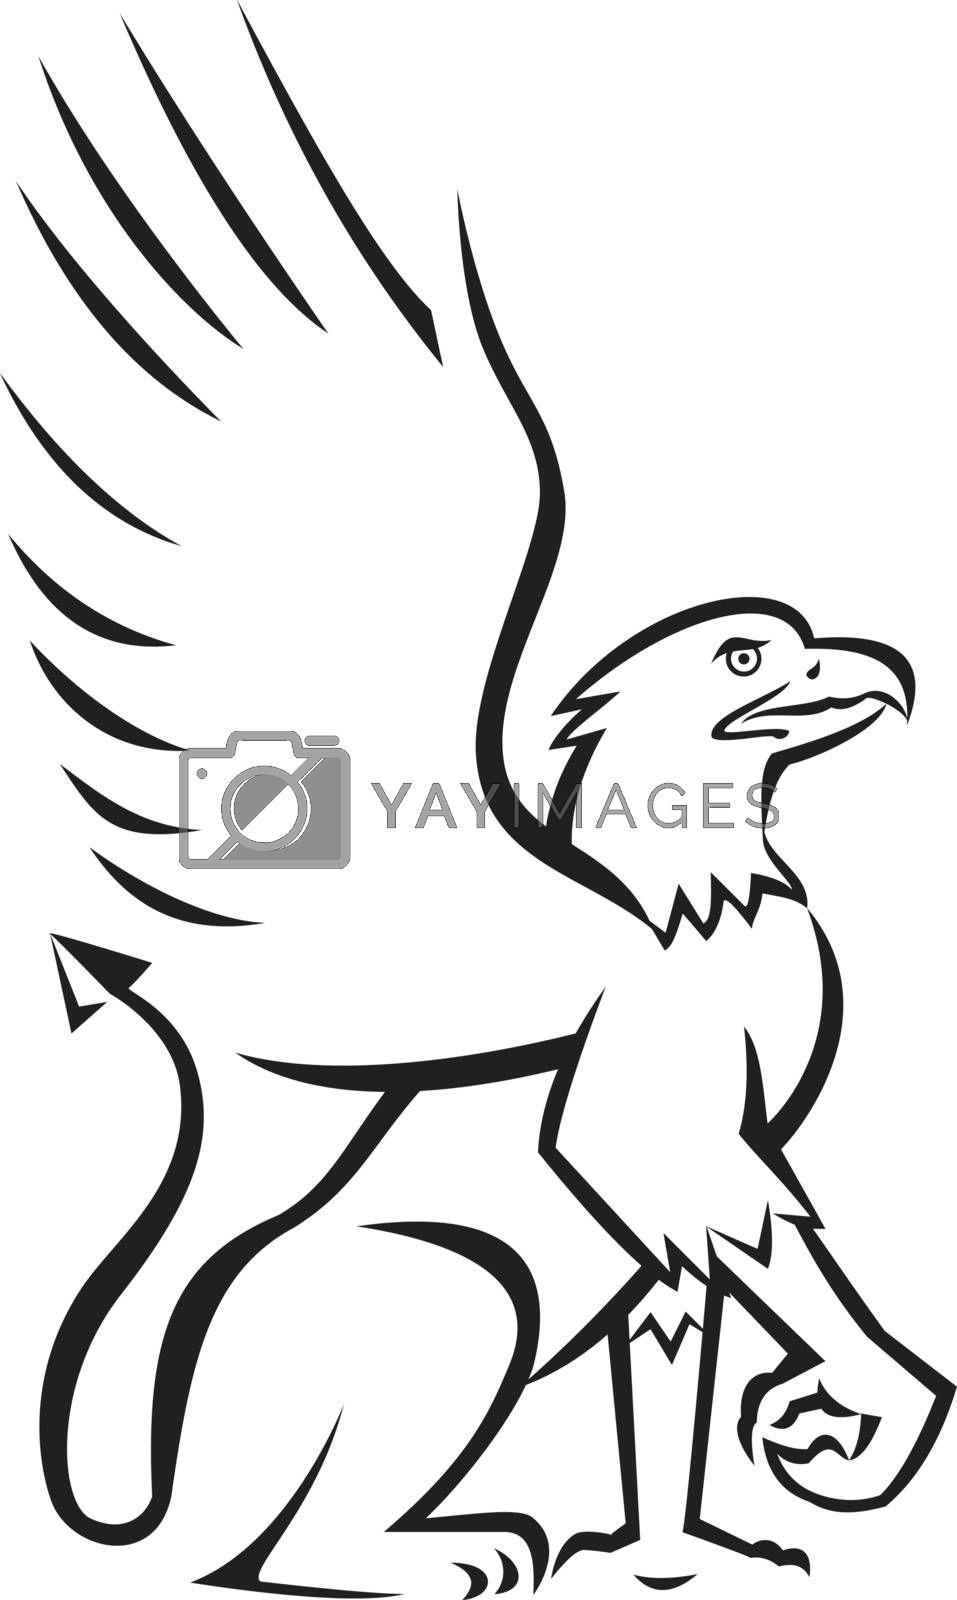 Illustration of a griffin, griffon, or gryphon sitting down viewed from the side set on isolated white background done in retro style.